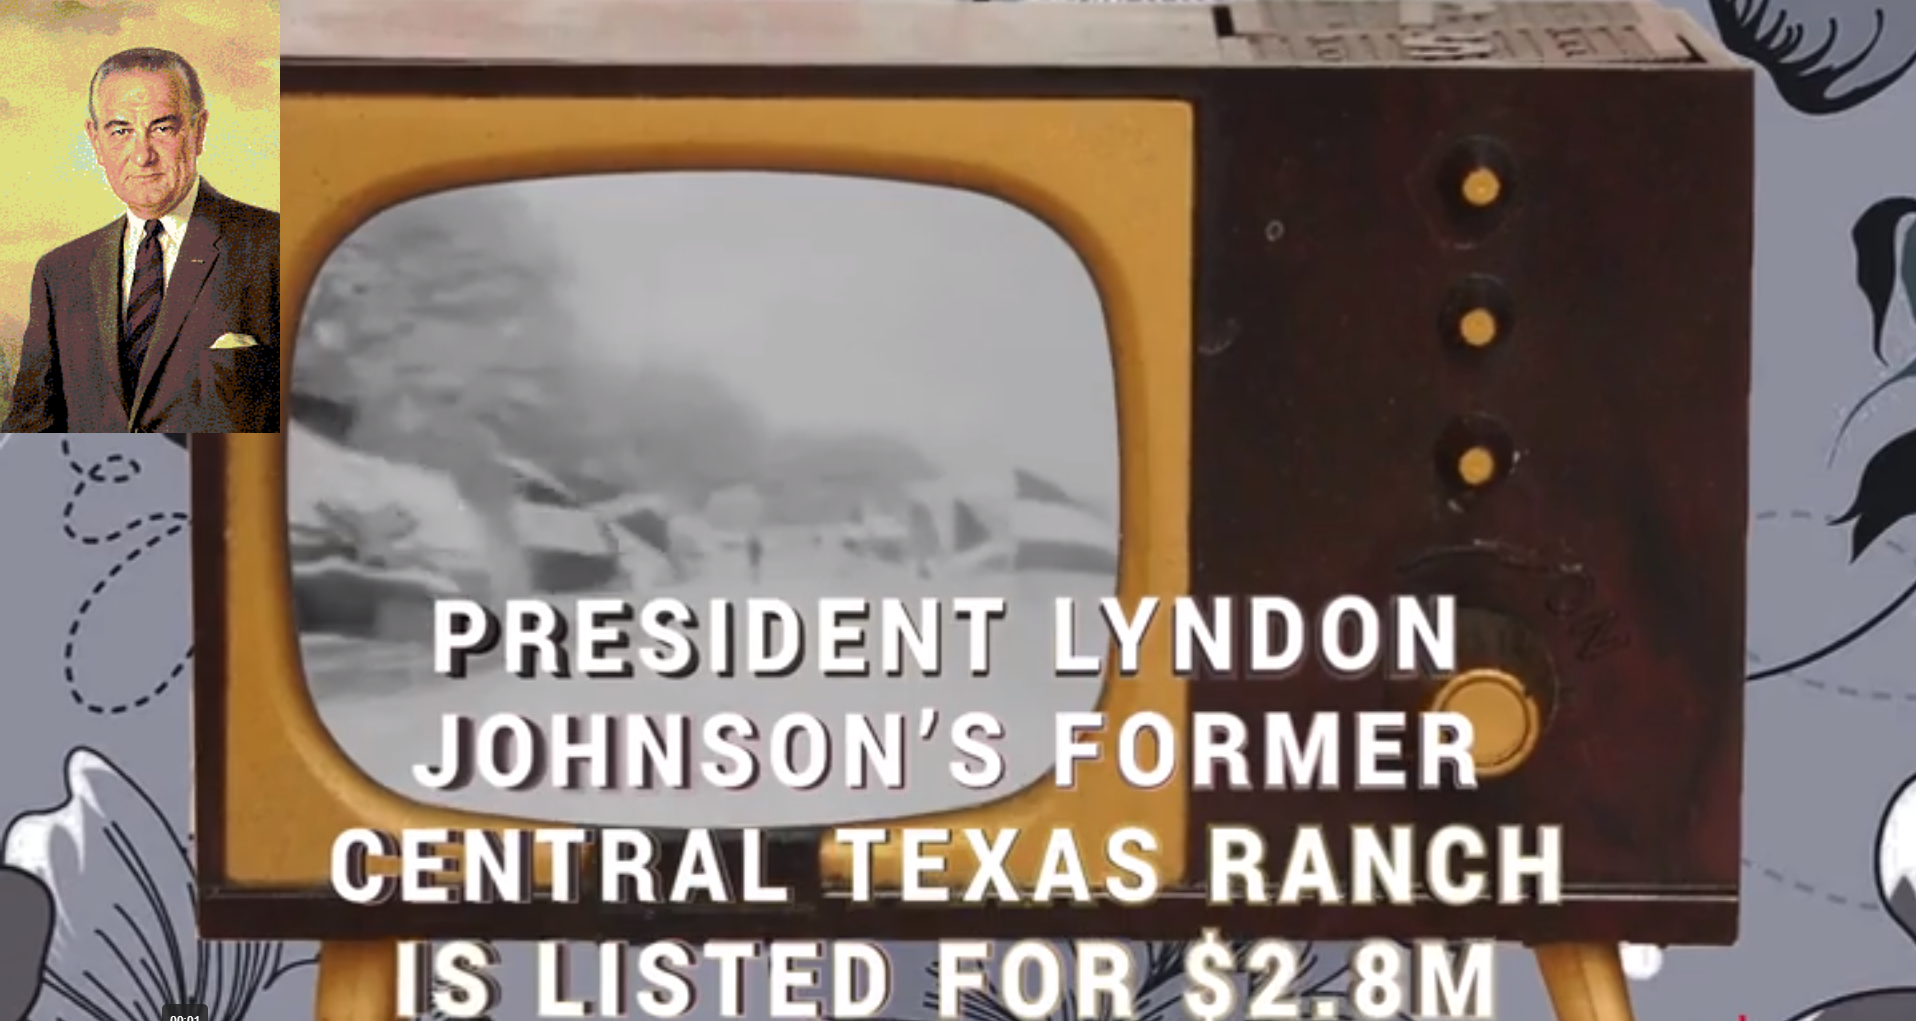 President Johnson Texas home is on the market for sale. It is listed at $2.8 million